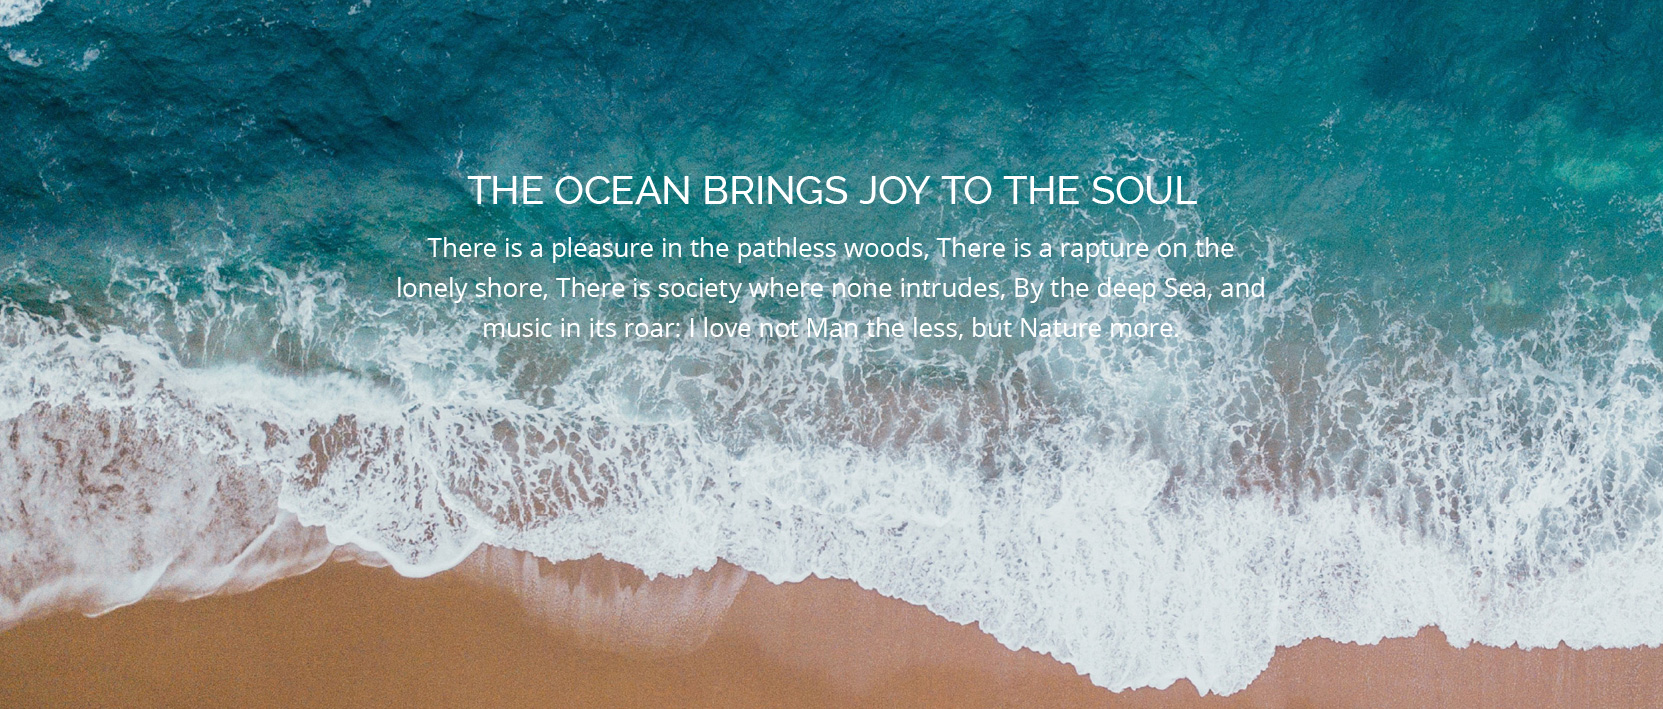 "Blue ocean was thing up on to the beach with text ""The Ocean Brings Joy to the Soul"""